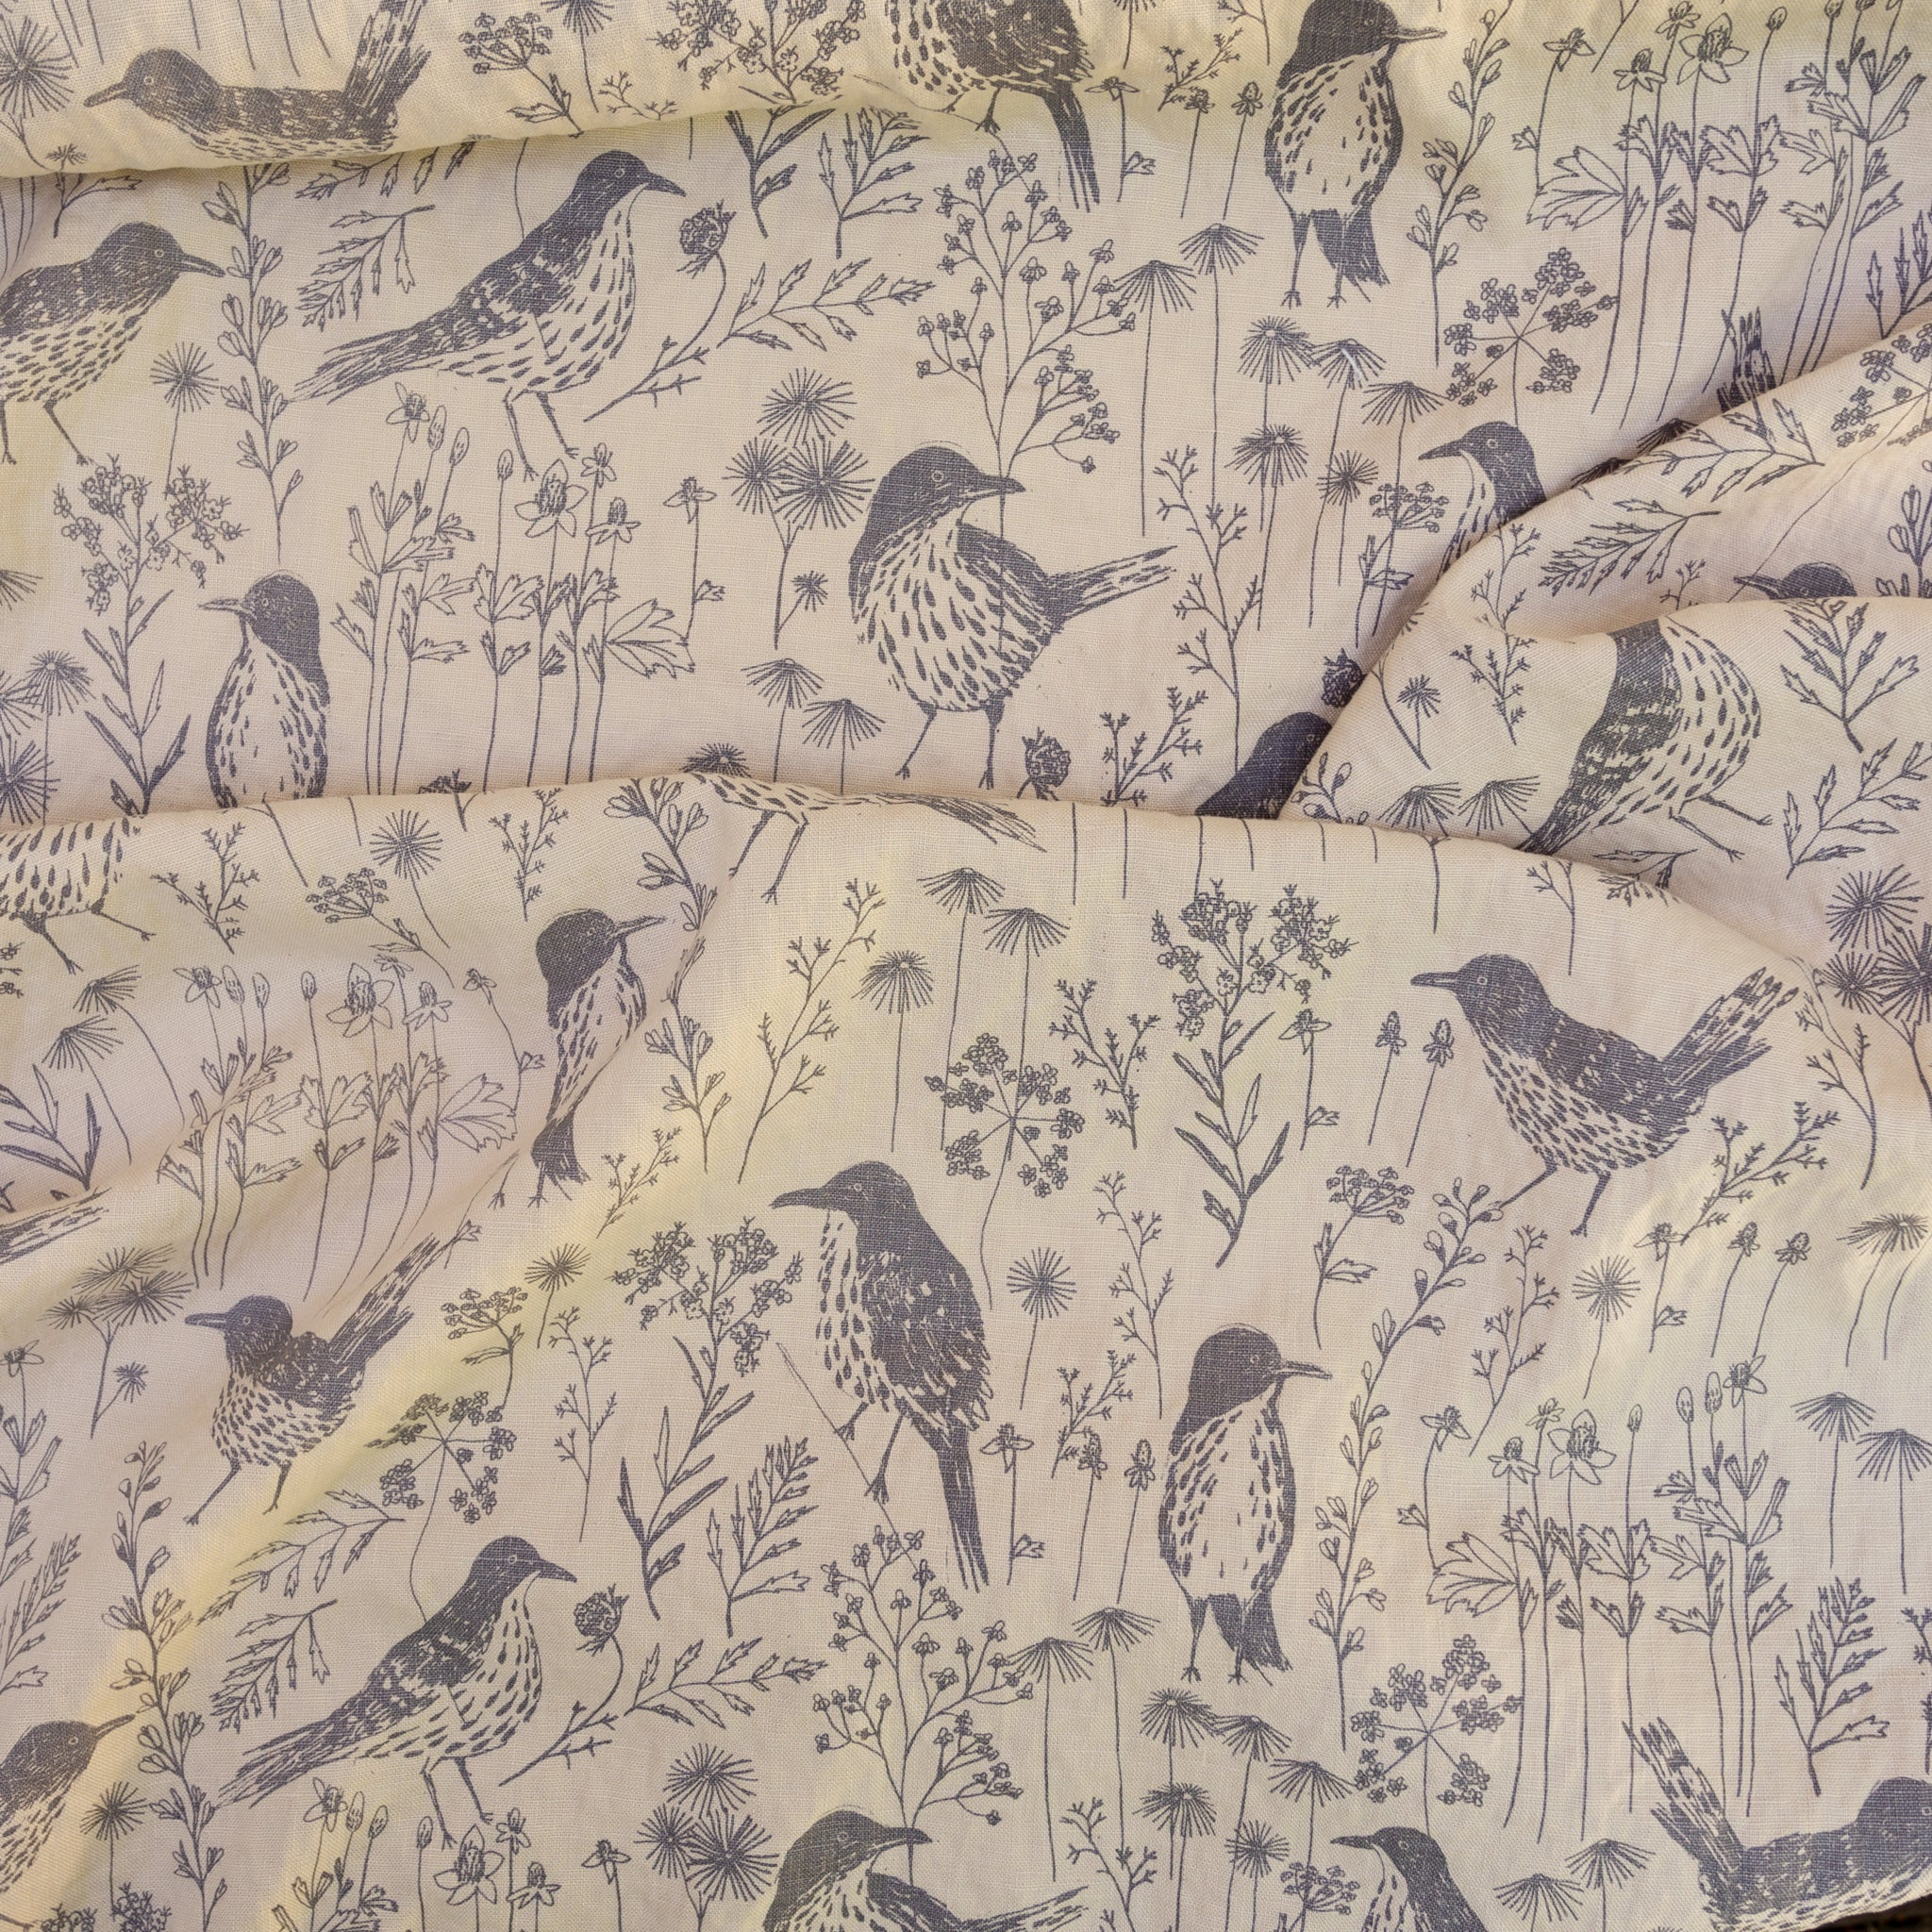 Yardage of brown thrashers screenprinted on linen